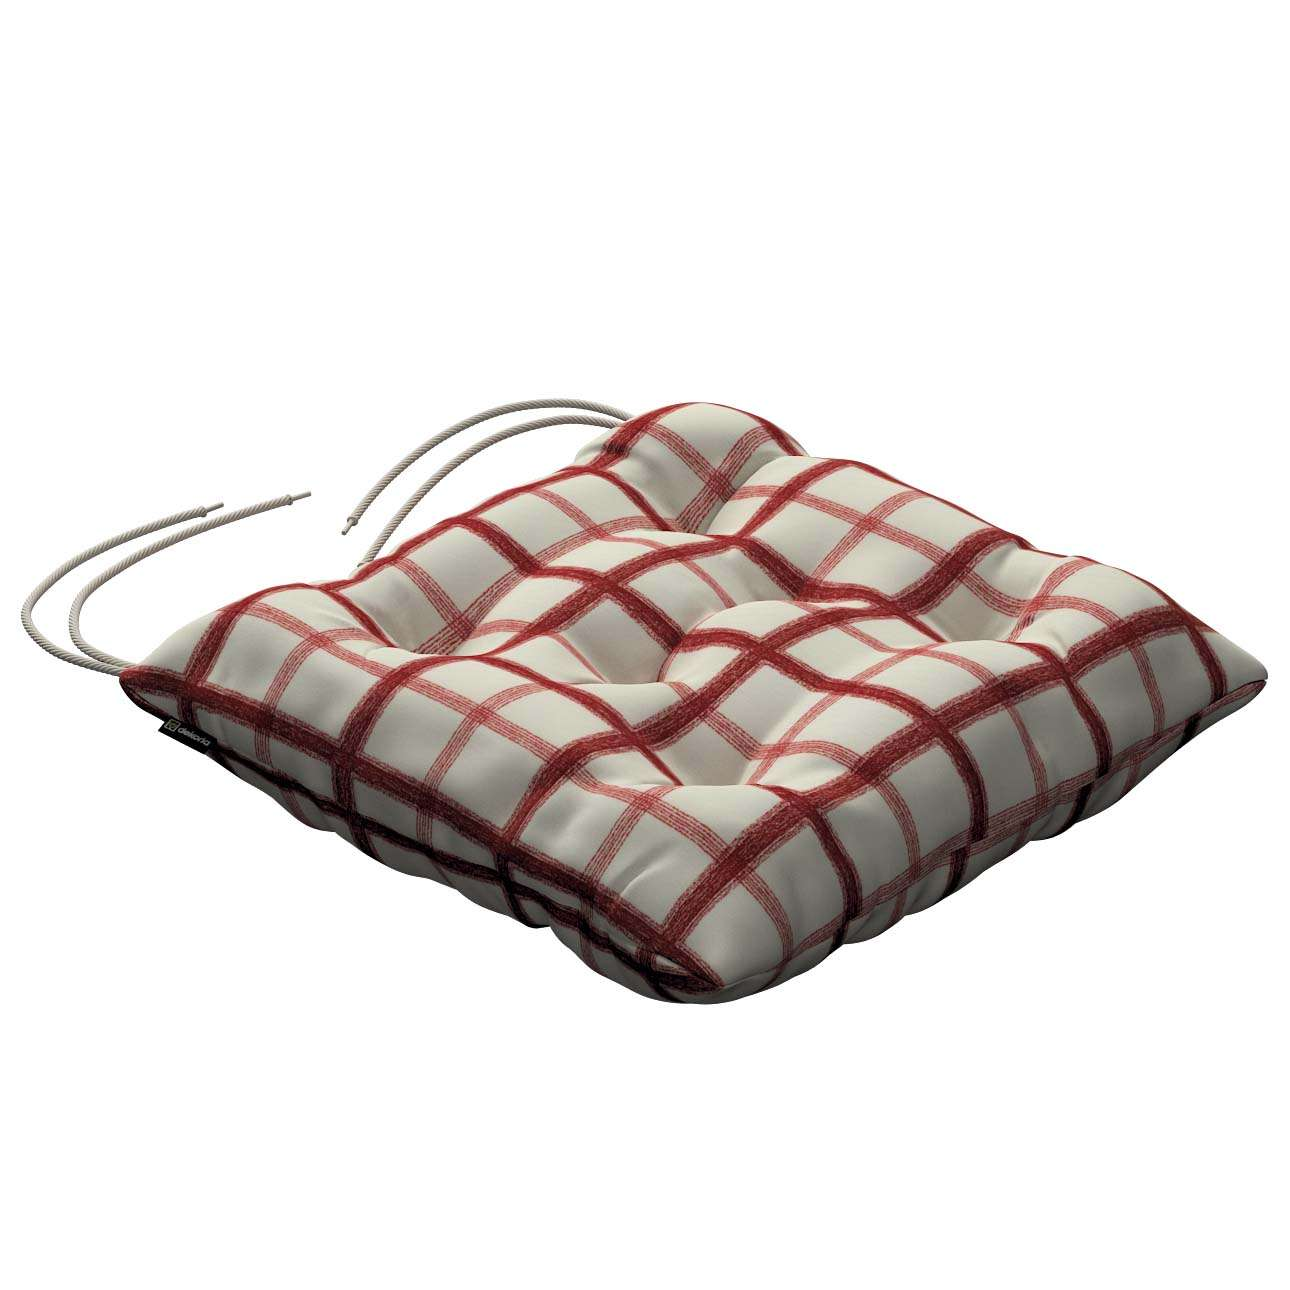 Jack seat pad with ties 40 × 40 × 8 cm (16 × 16 × 3 inch) in collection Avinon, fabric: 131-15